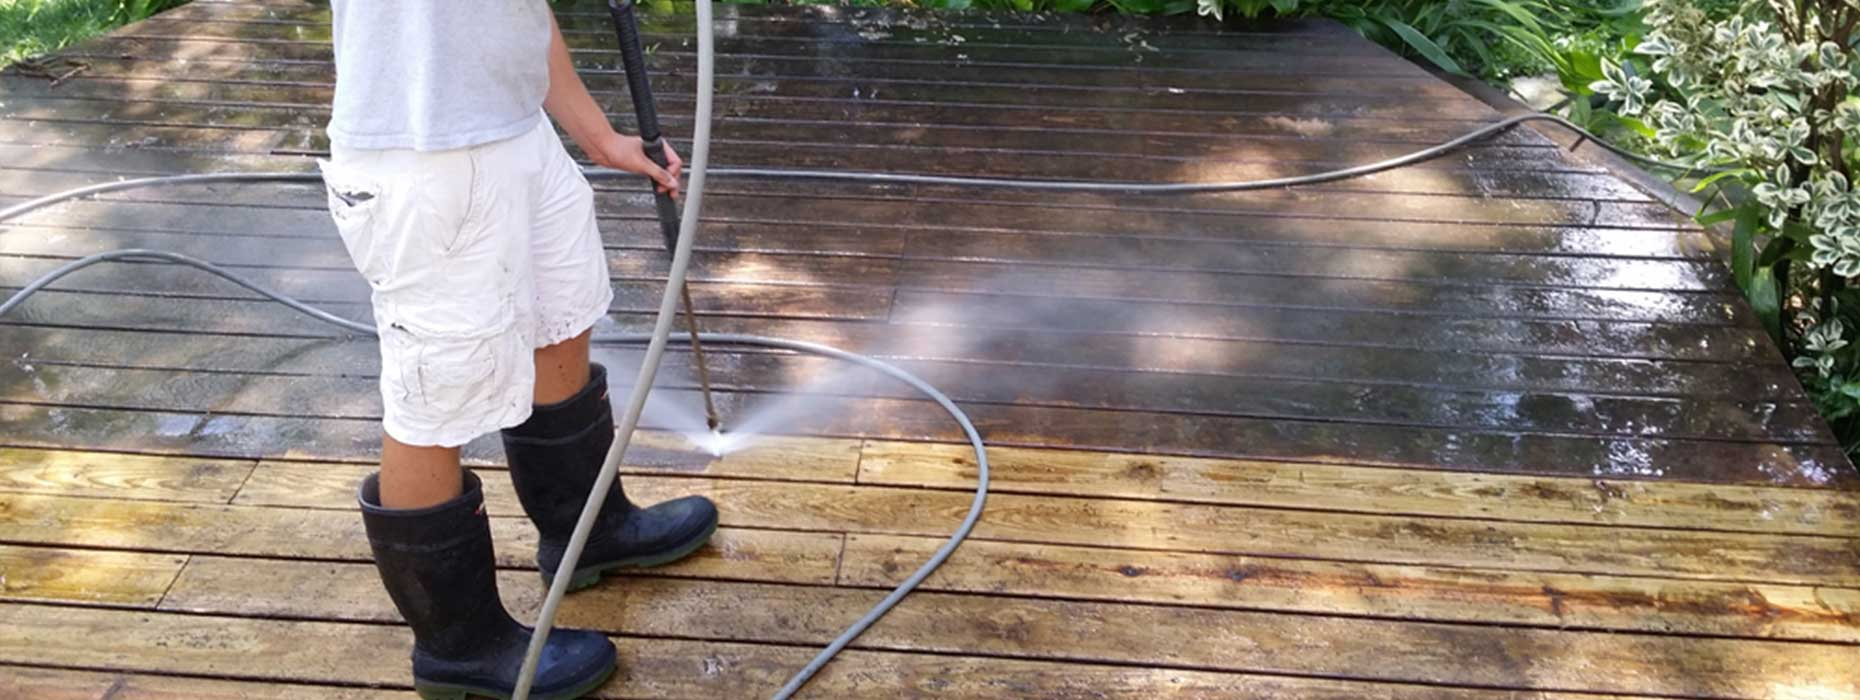 Why Its Important to Hire a Pro For Home Exterior Cleaning